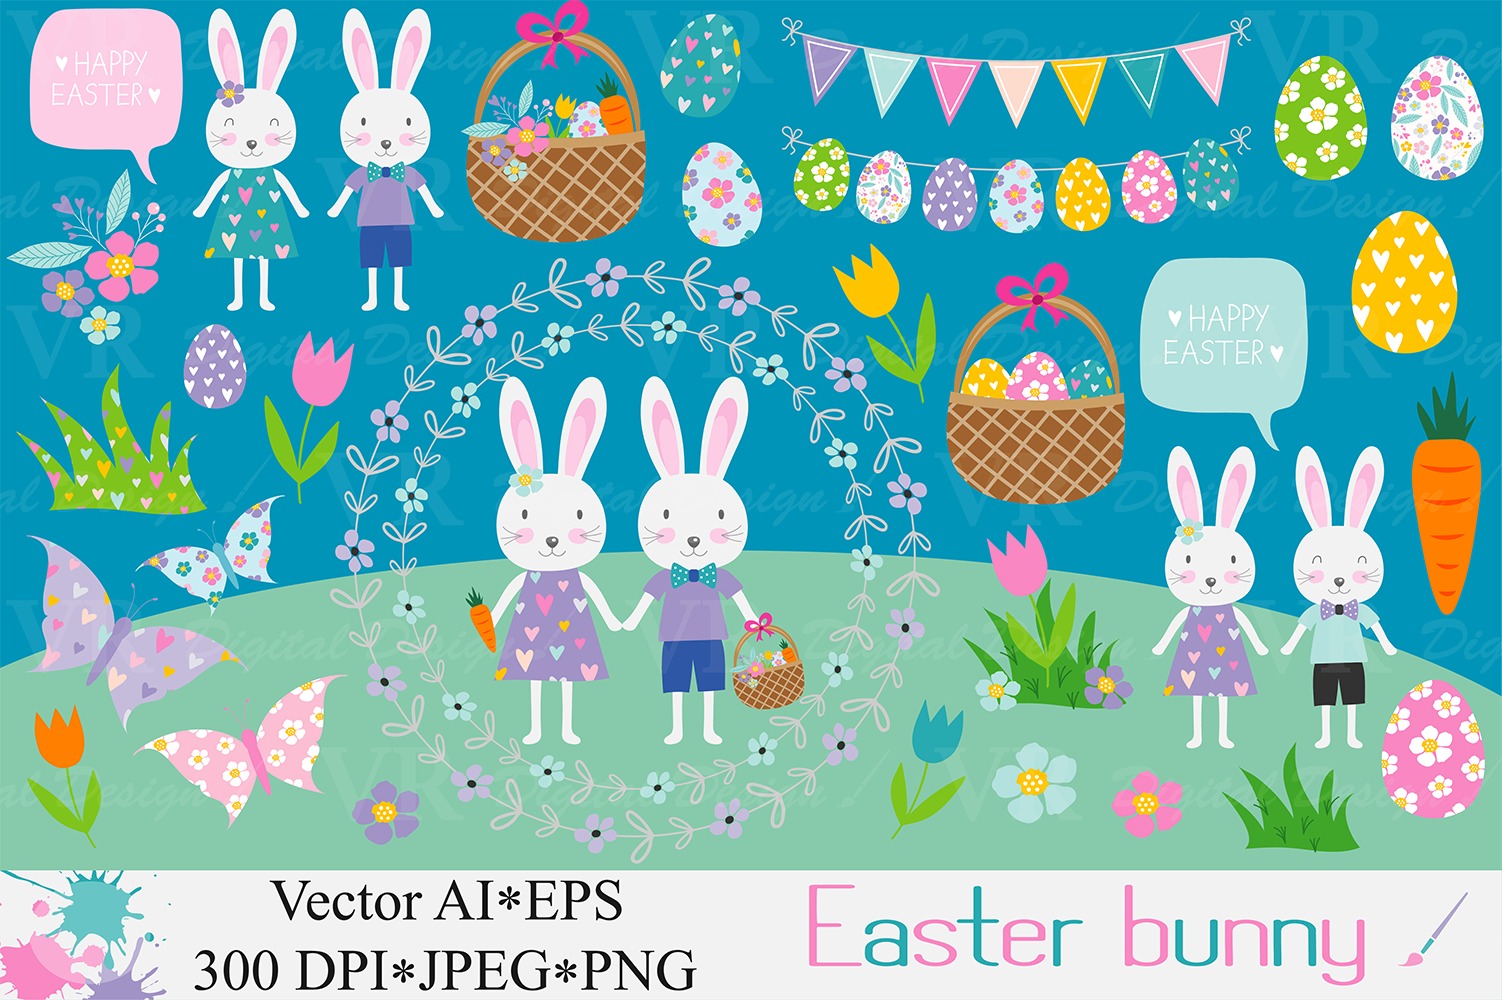 Easter bunny clipart / Easter rabbit, eggs vector graphics ...